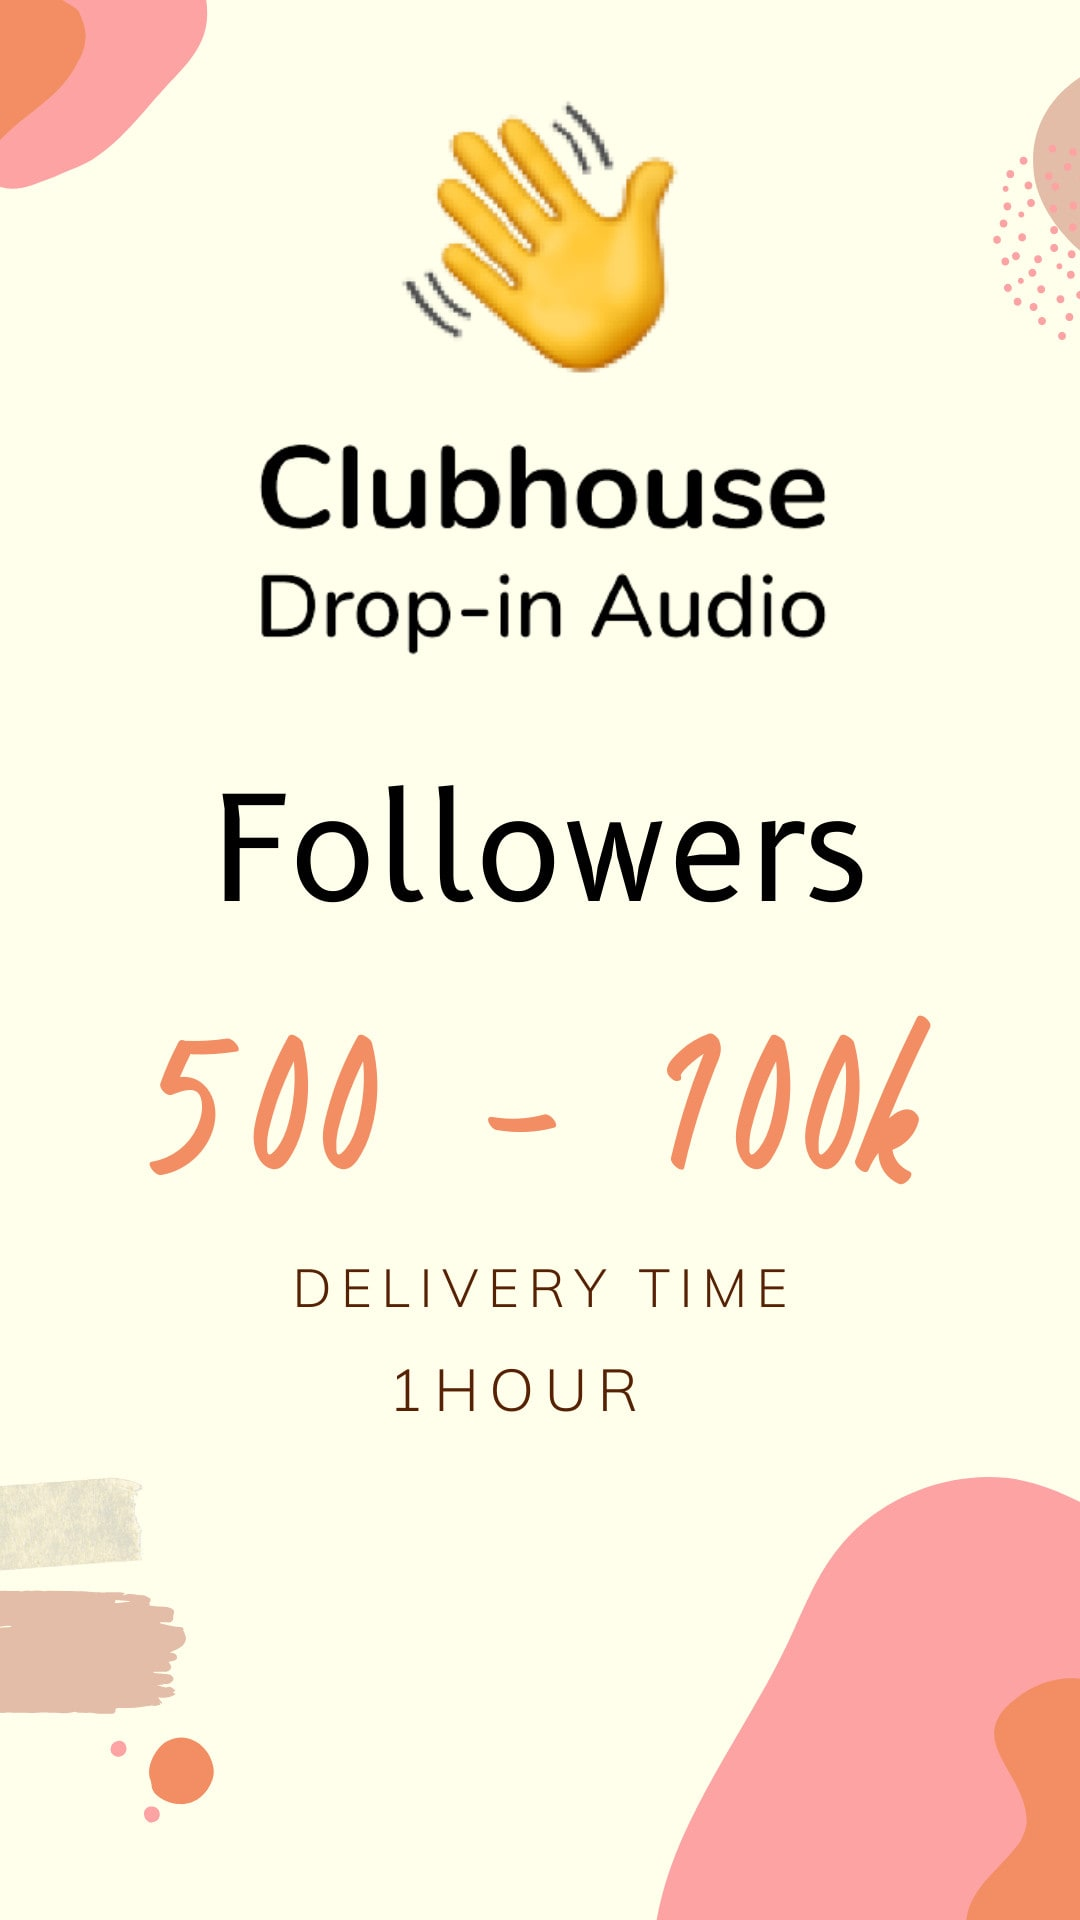 Clubhouse optimisation service for profile boost